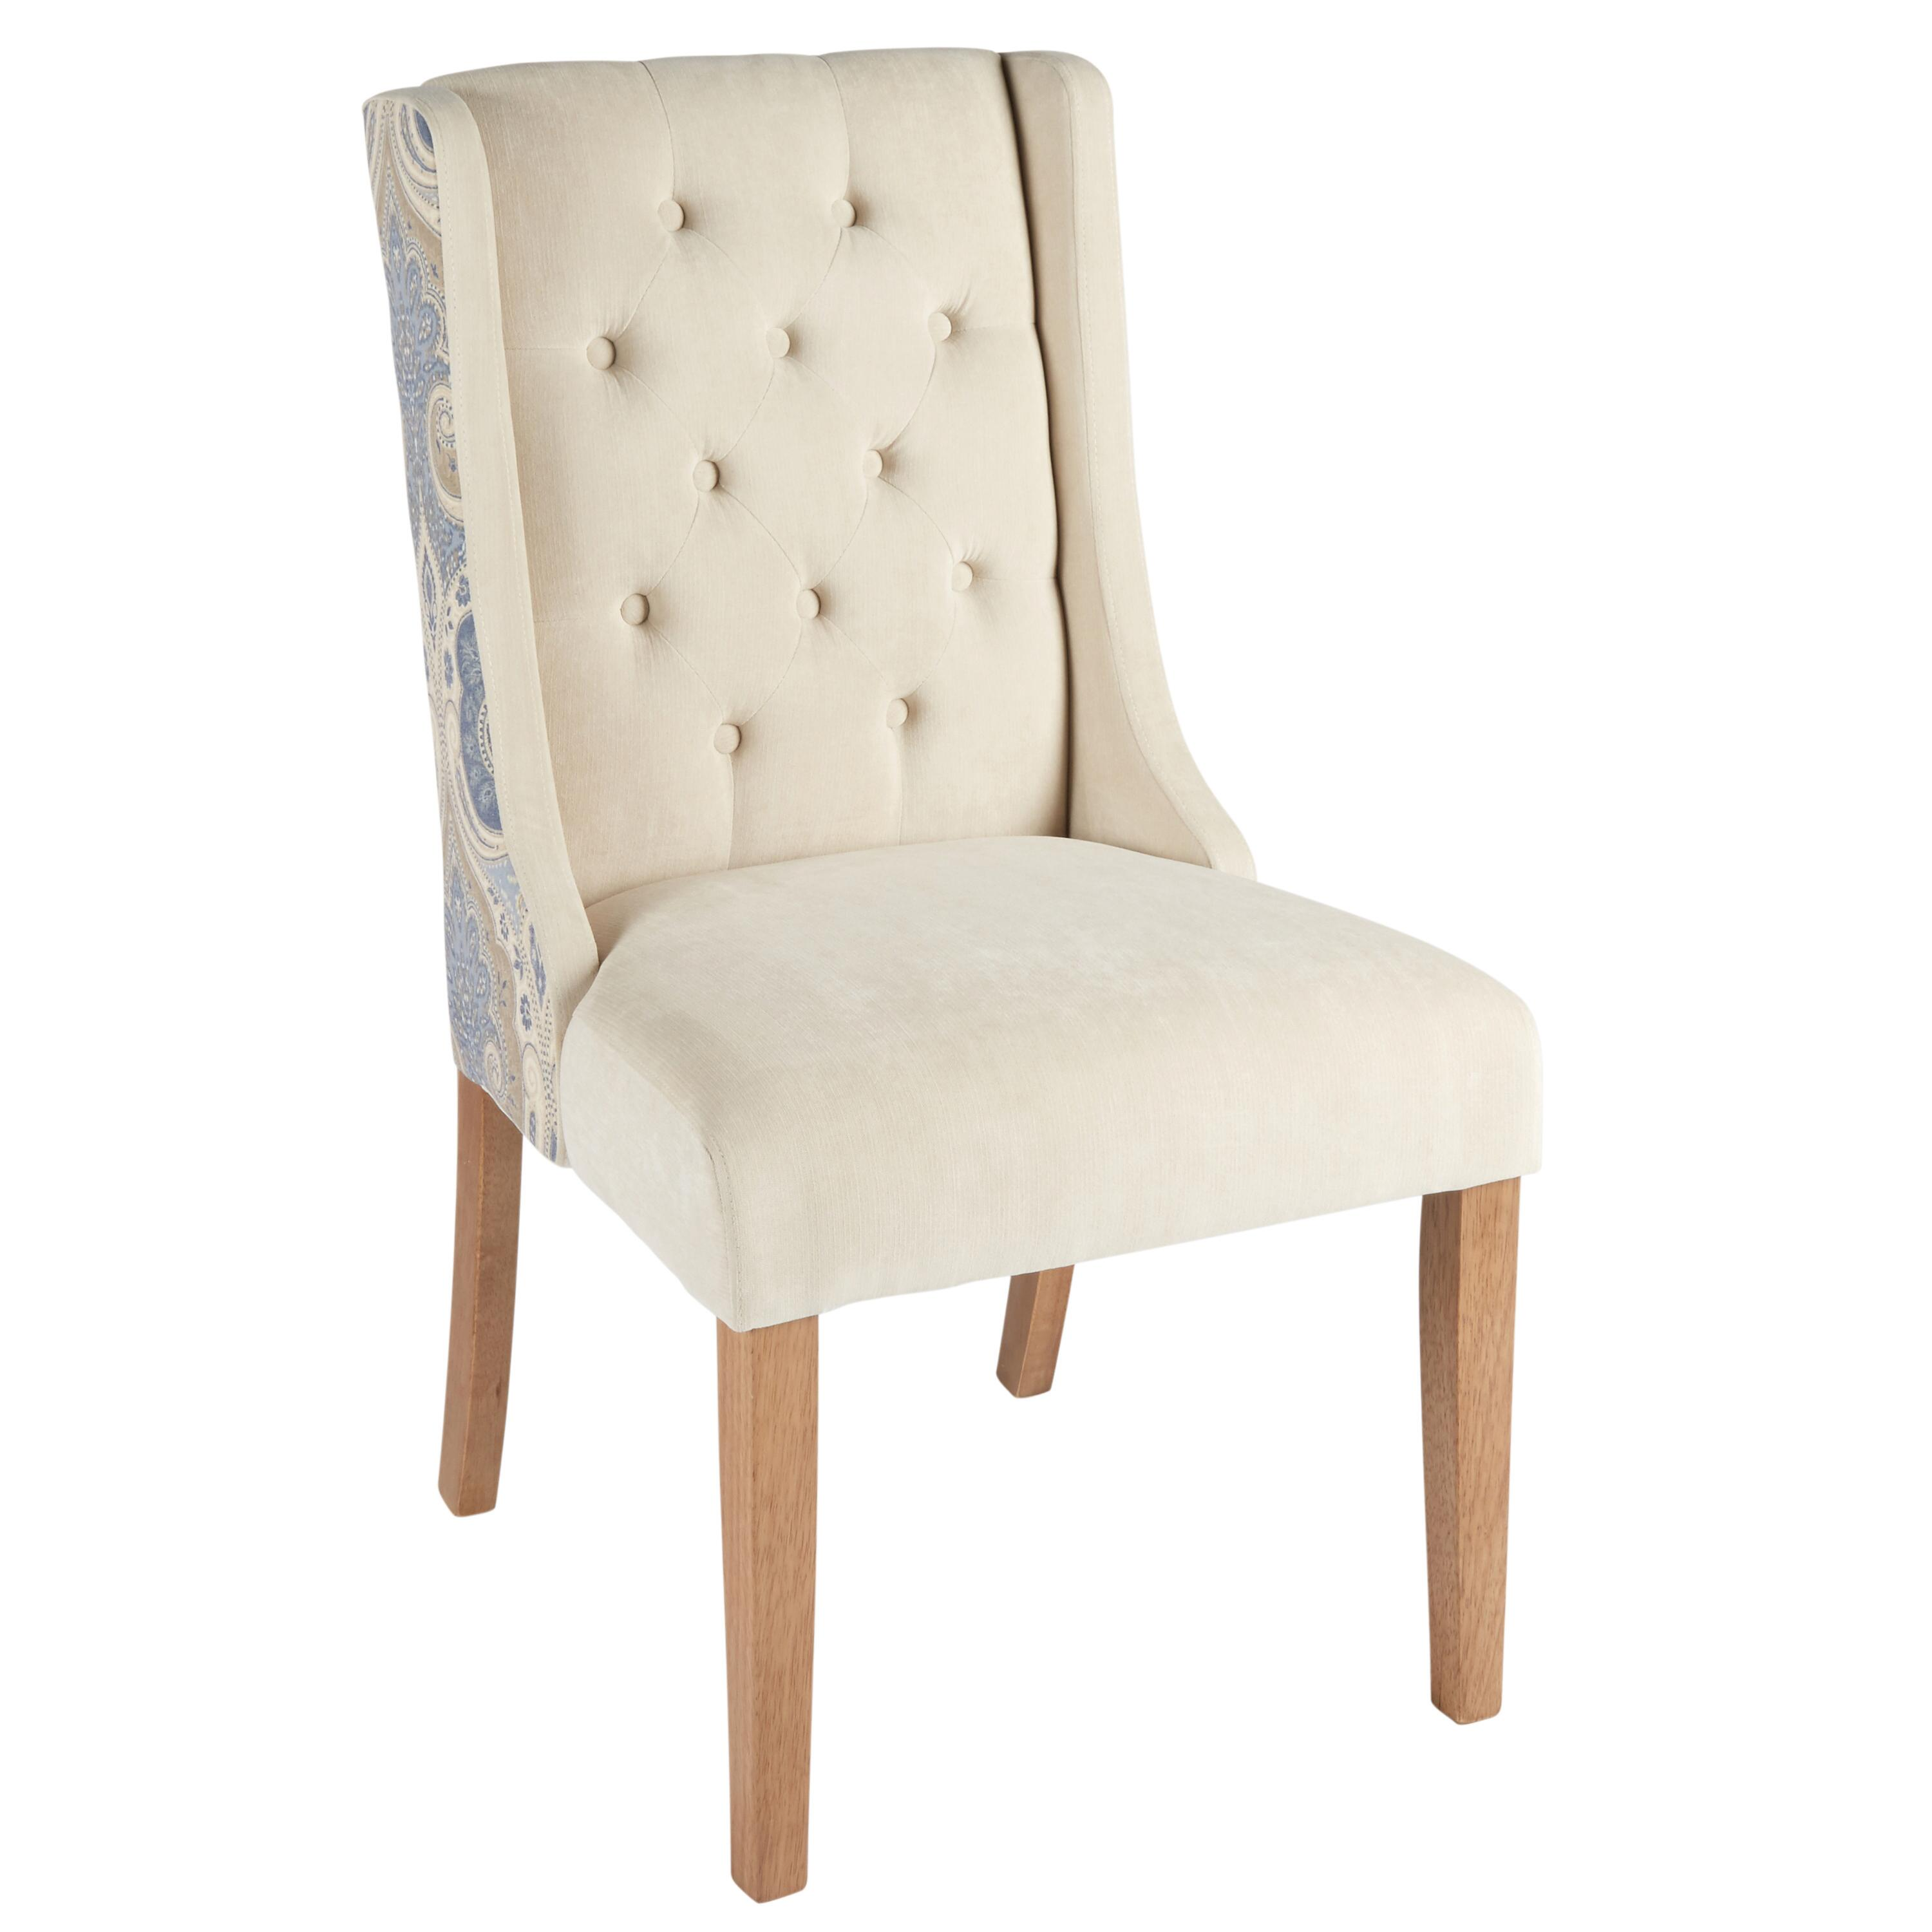 Paisley Tufted Upholstery Sleigh Parsonu0027s Chair